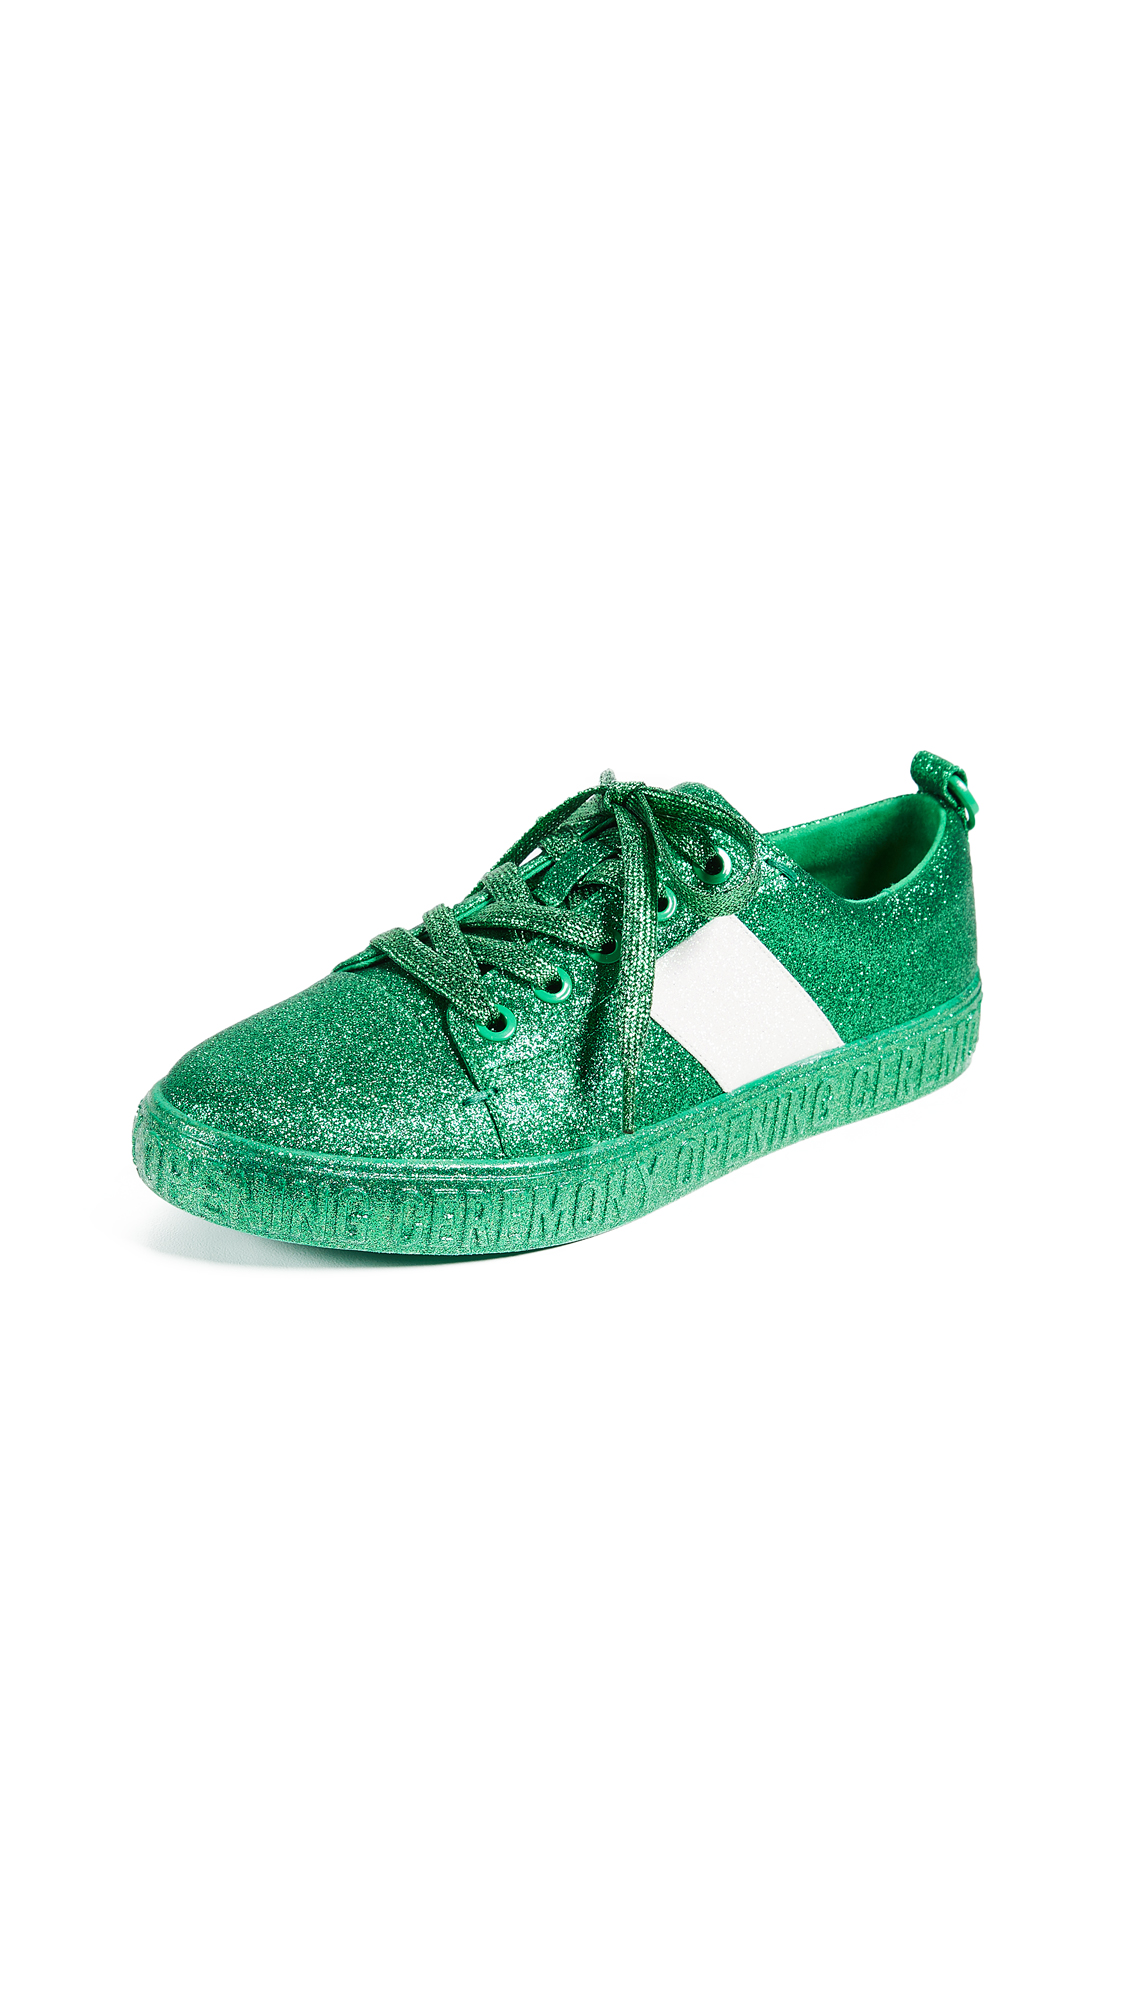 Opening Ceremony La Cienega Glitter Sneakers In Green